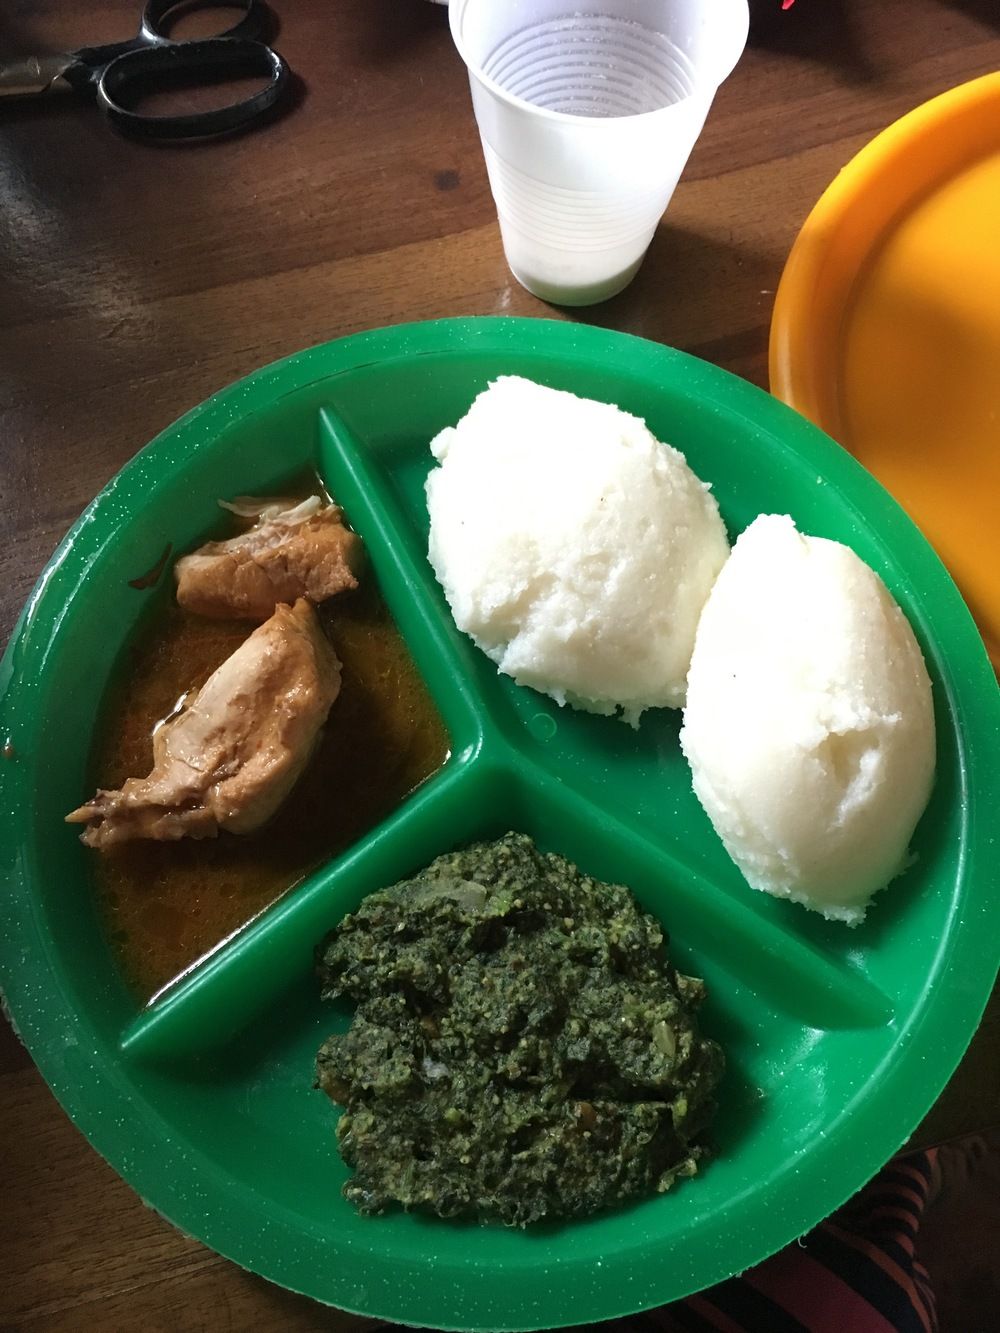 "1pm and lunch is served! This is typically the biggest meal of the day. The top right is Nshima- a corn meal mixture thicker than grits. It is balled up in the right hand and used to eat the ""relish"" or stew (bottom is stewed pumpkin leaves called Chibwabwa), and the meat with sauce (chicken here)."